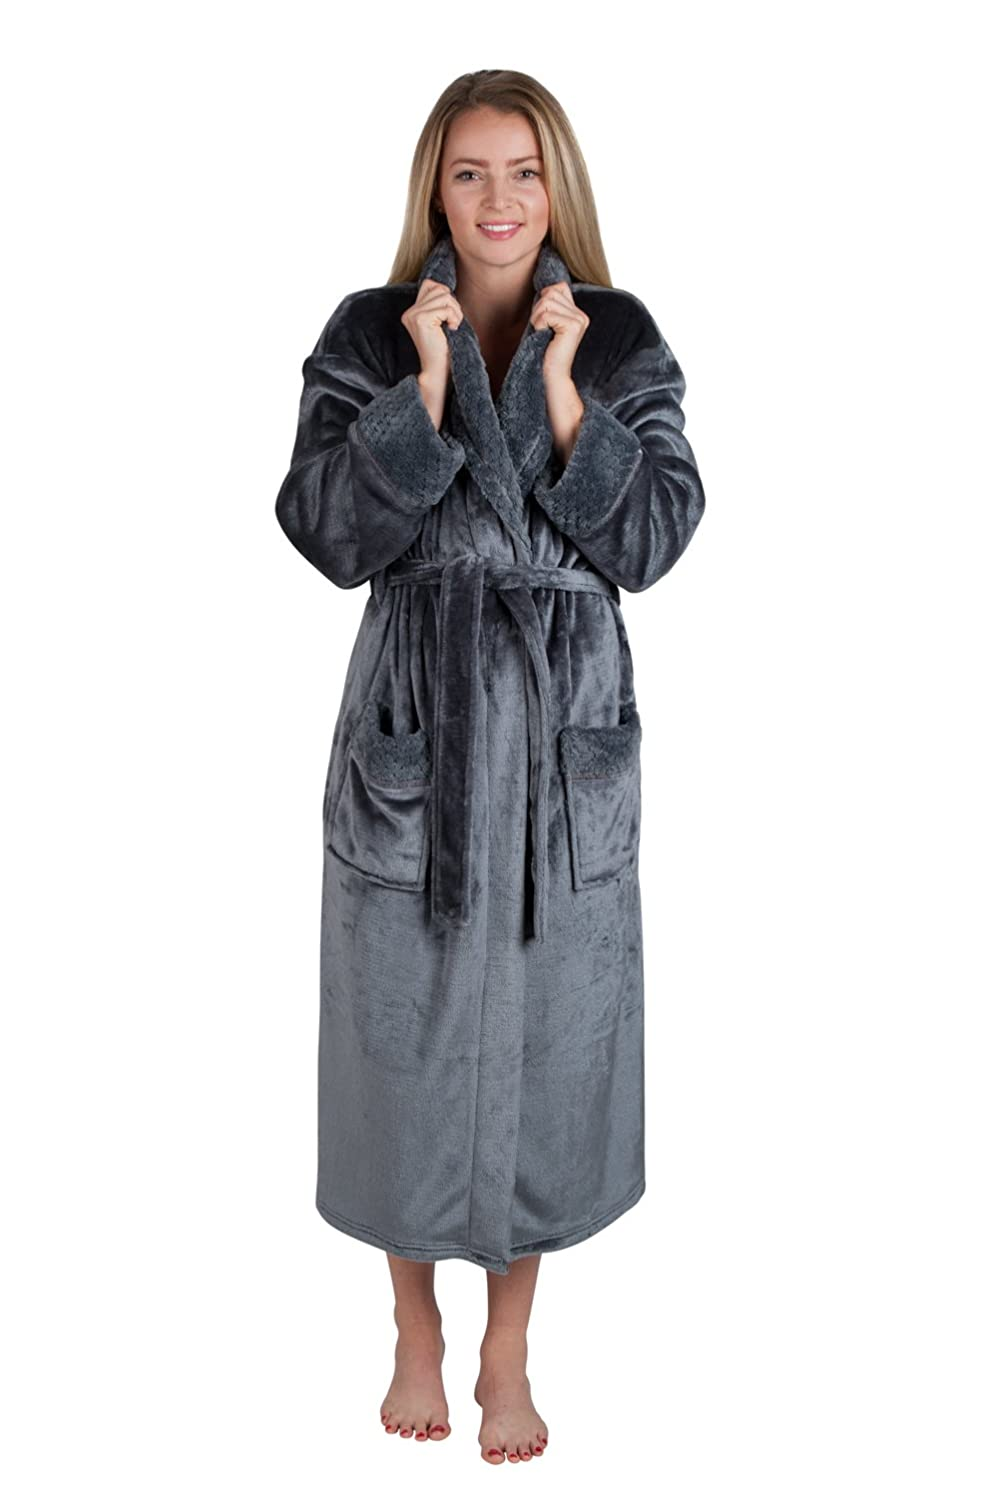 cc504e87d2 Women s Spa Style Full Length Plush Robe with Velvet Collar   Cuffs Plus  Sizes Avail. at Amazon Women s Clothing store